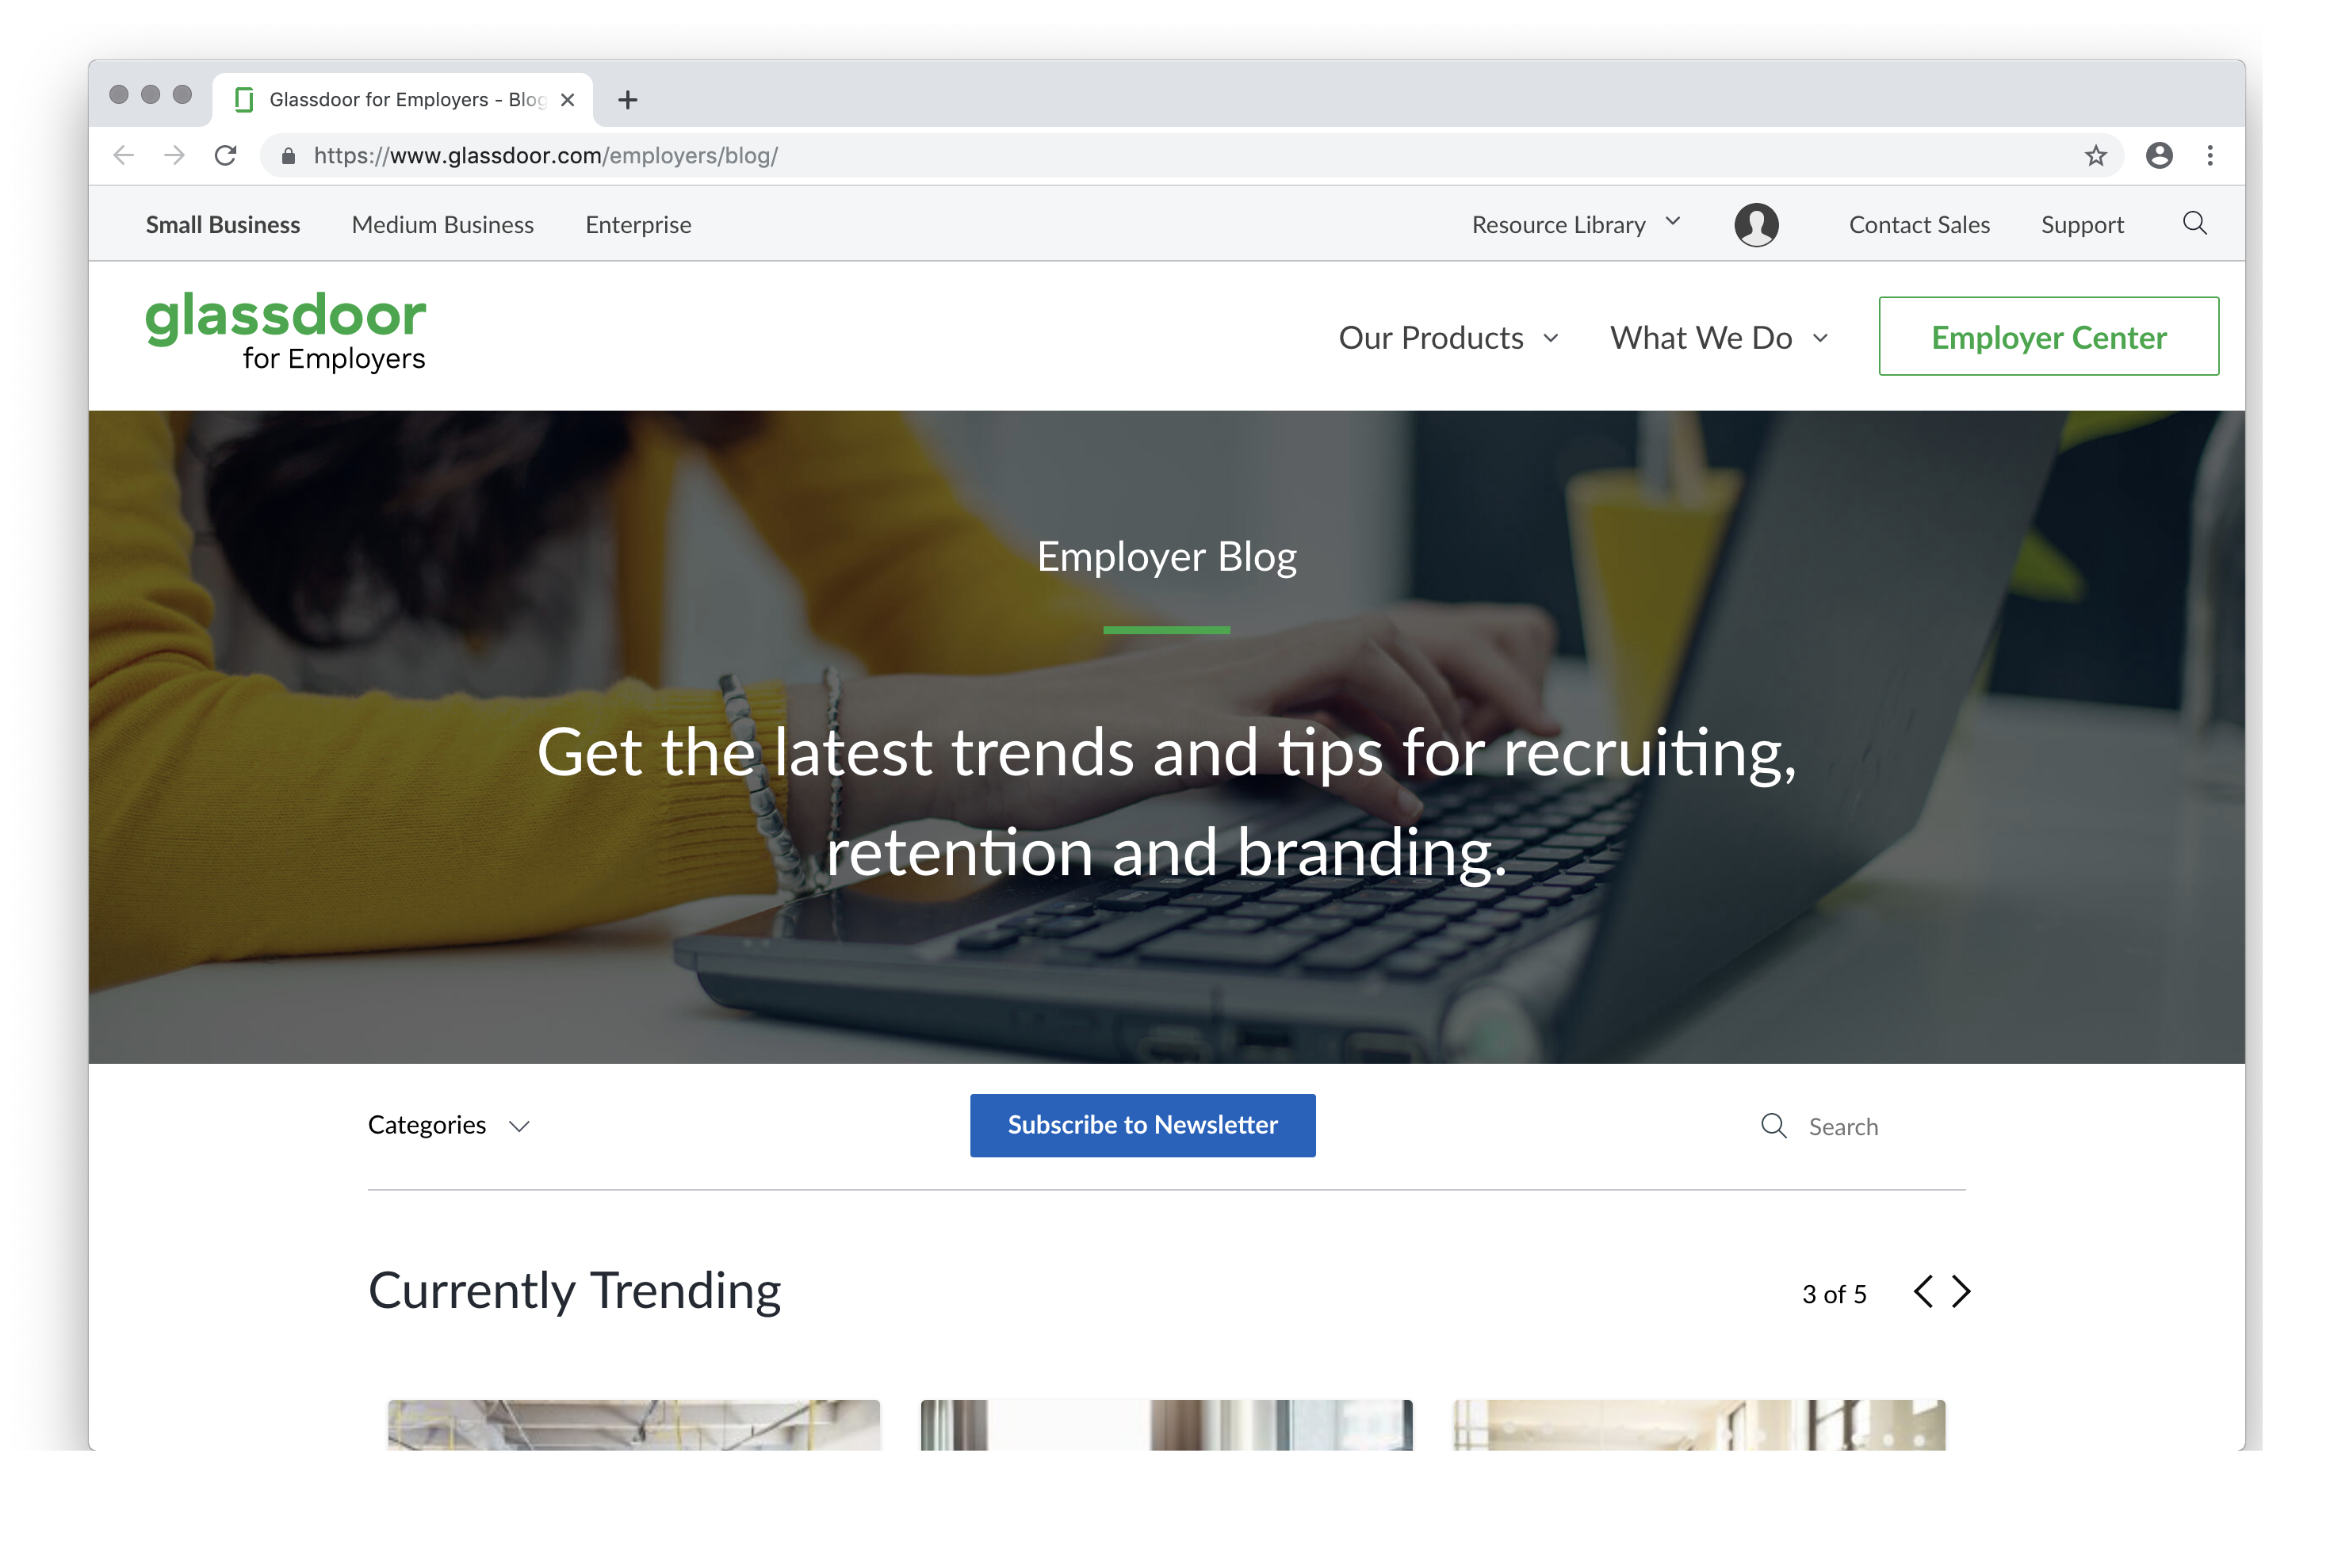 Glassdoor for Employers - Blog - Read posts about hiring and recruiting